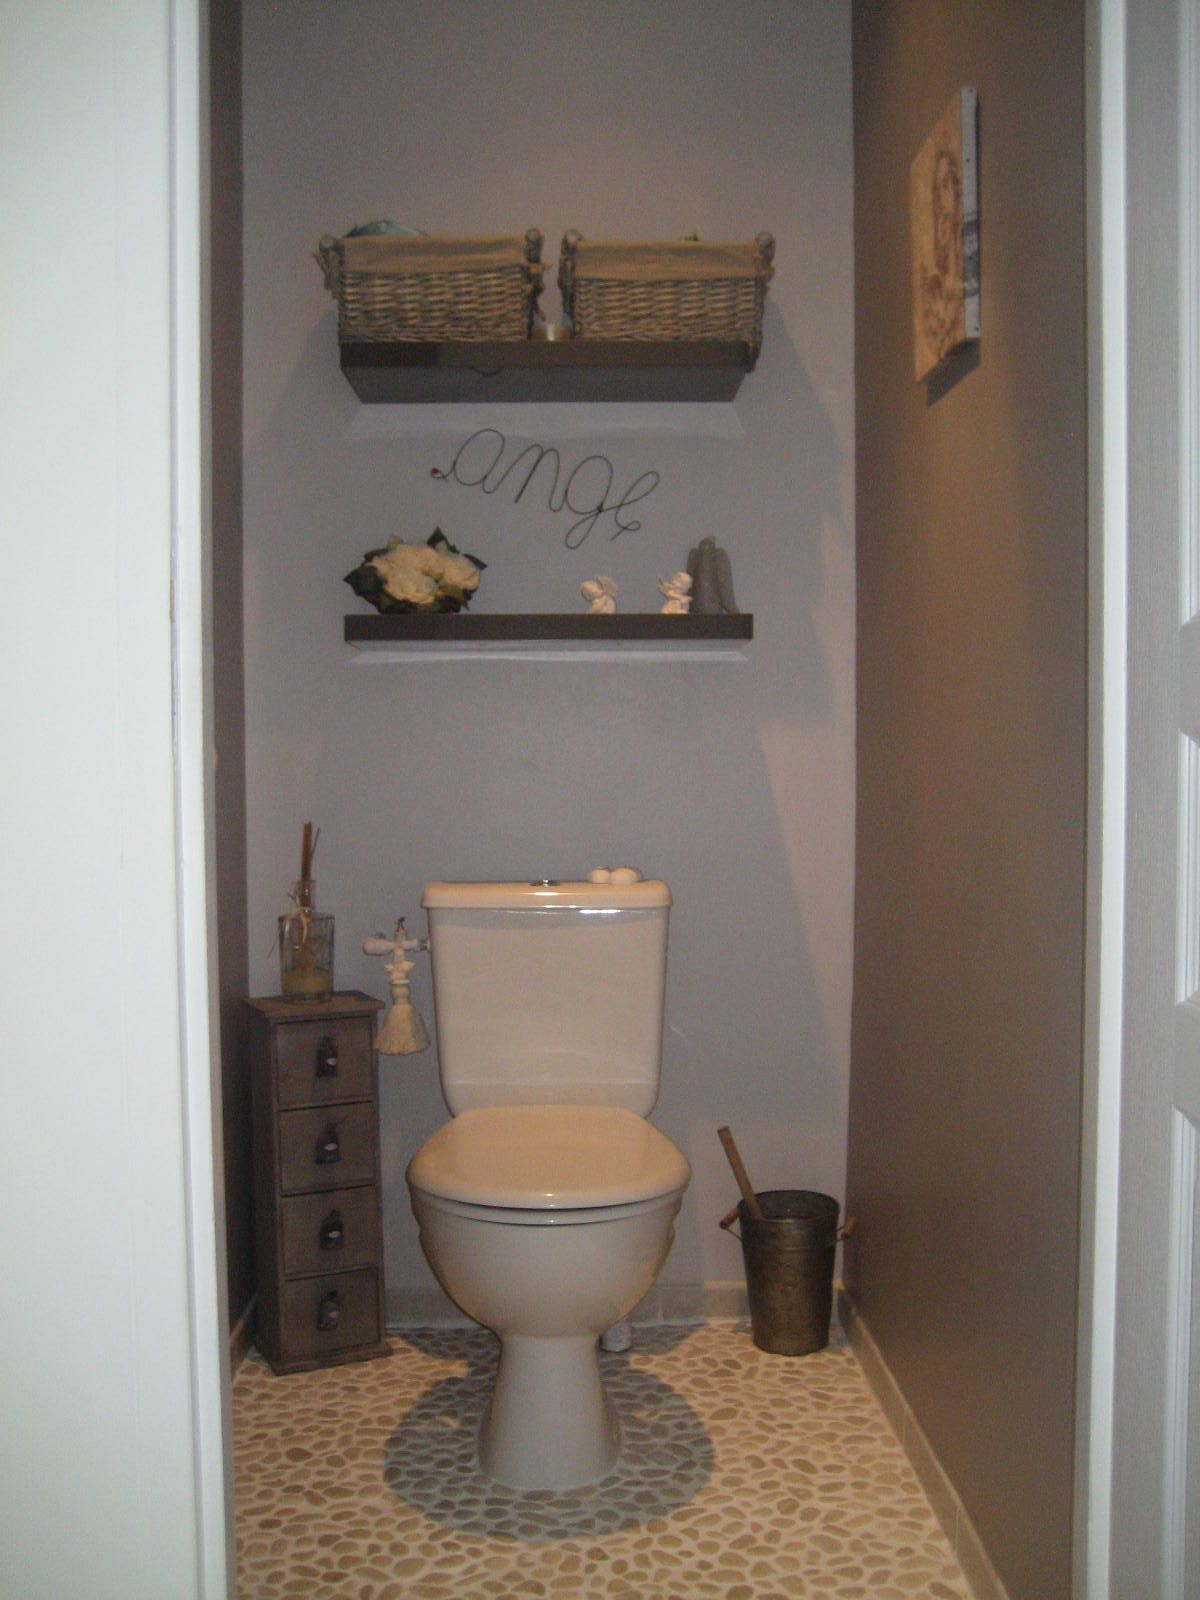 Toilette deco google search nouvelle maison - Decoration toilette originale ...